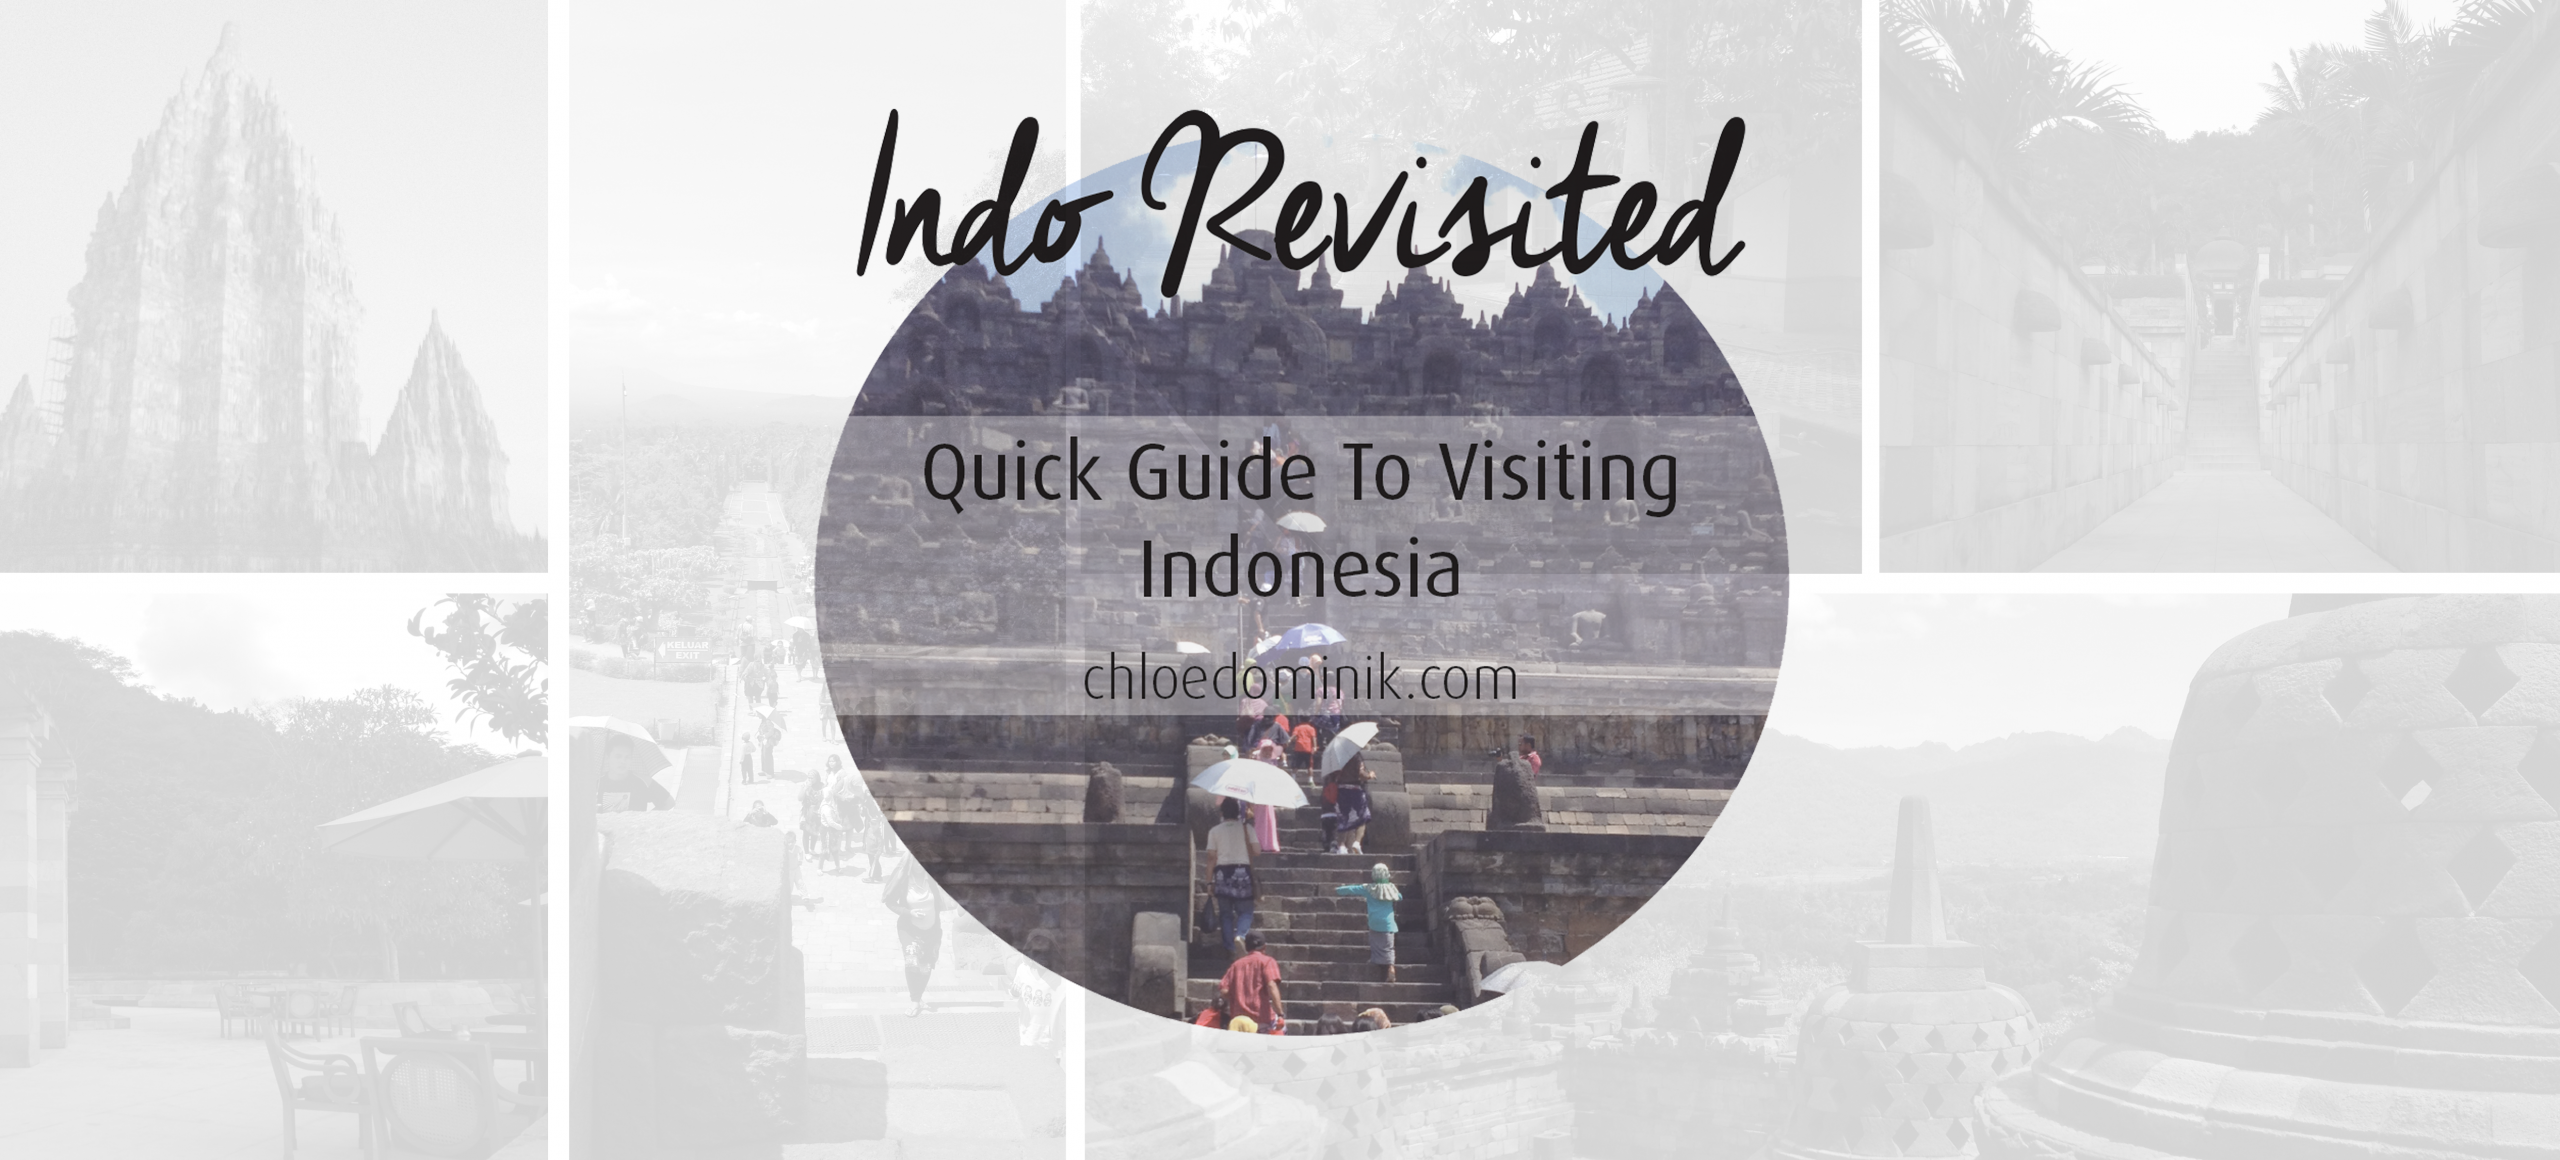 Indo Revisited: Quick Guide To Visiting Indonesia